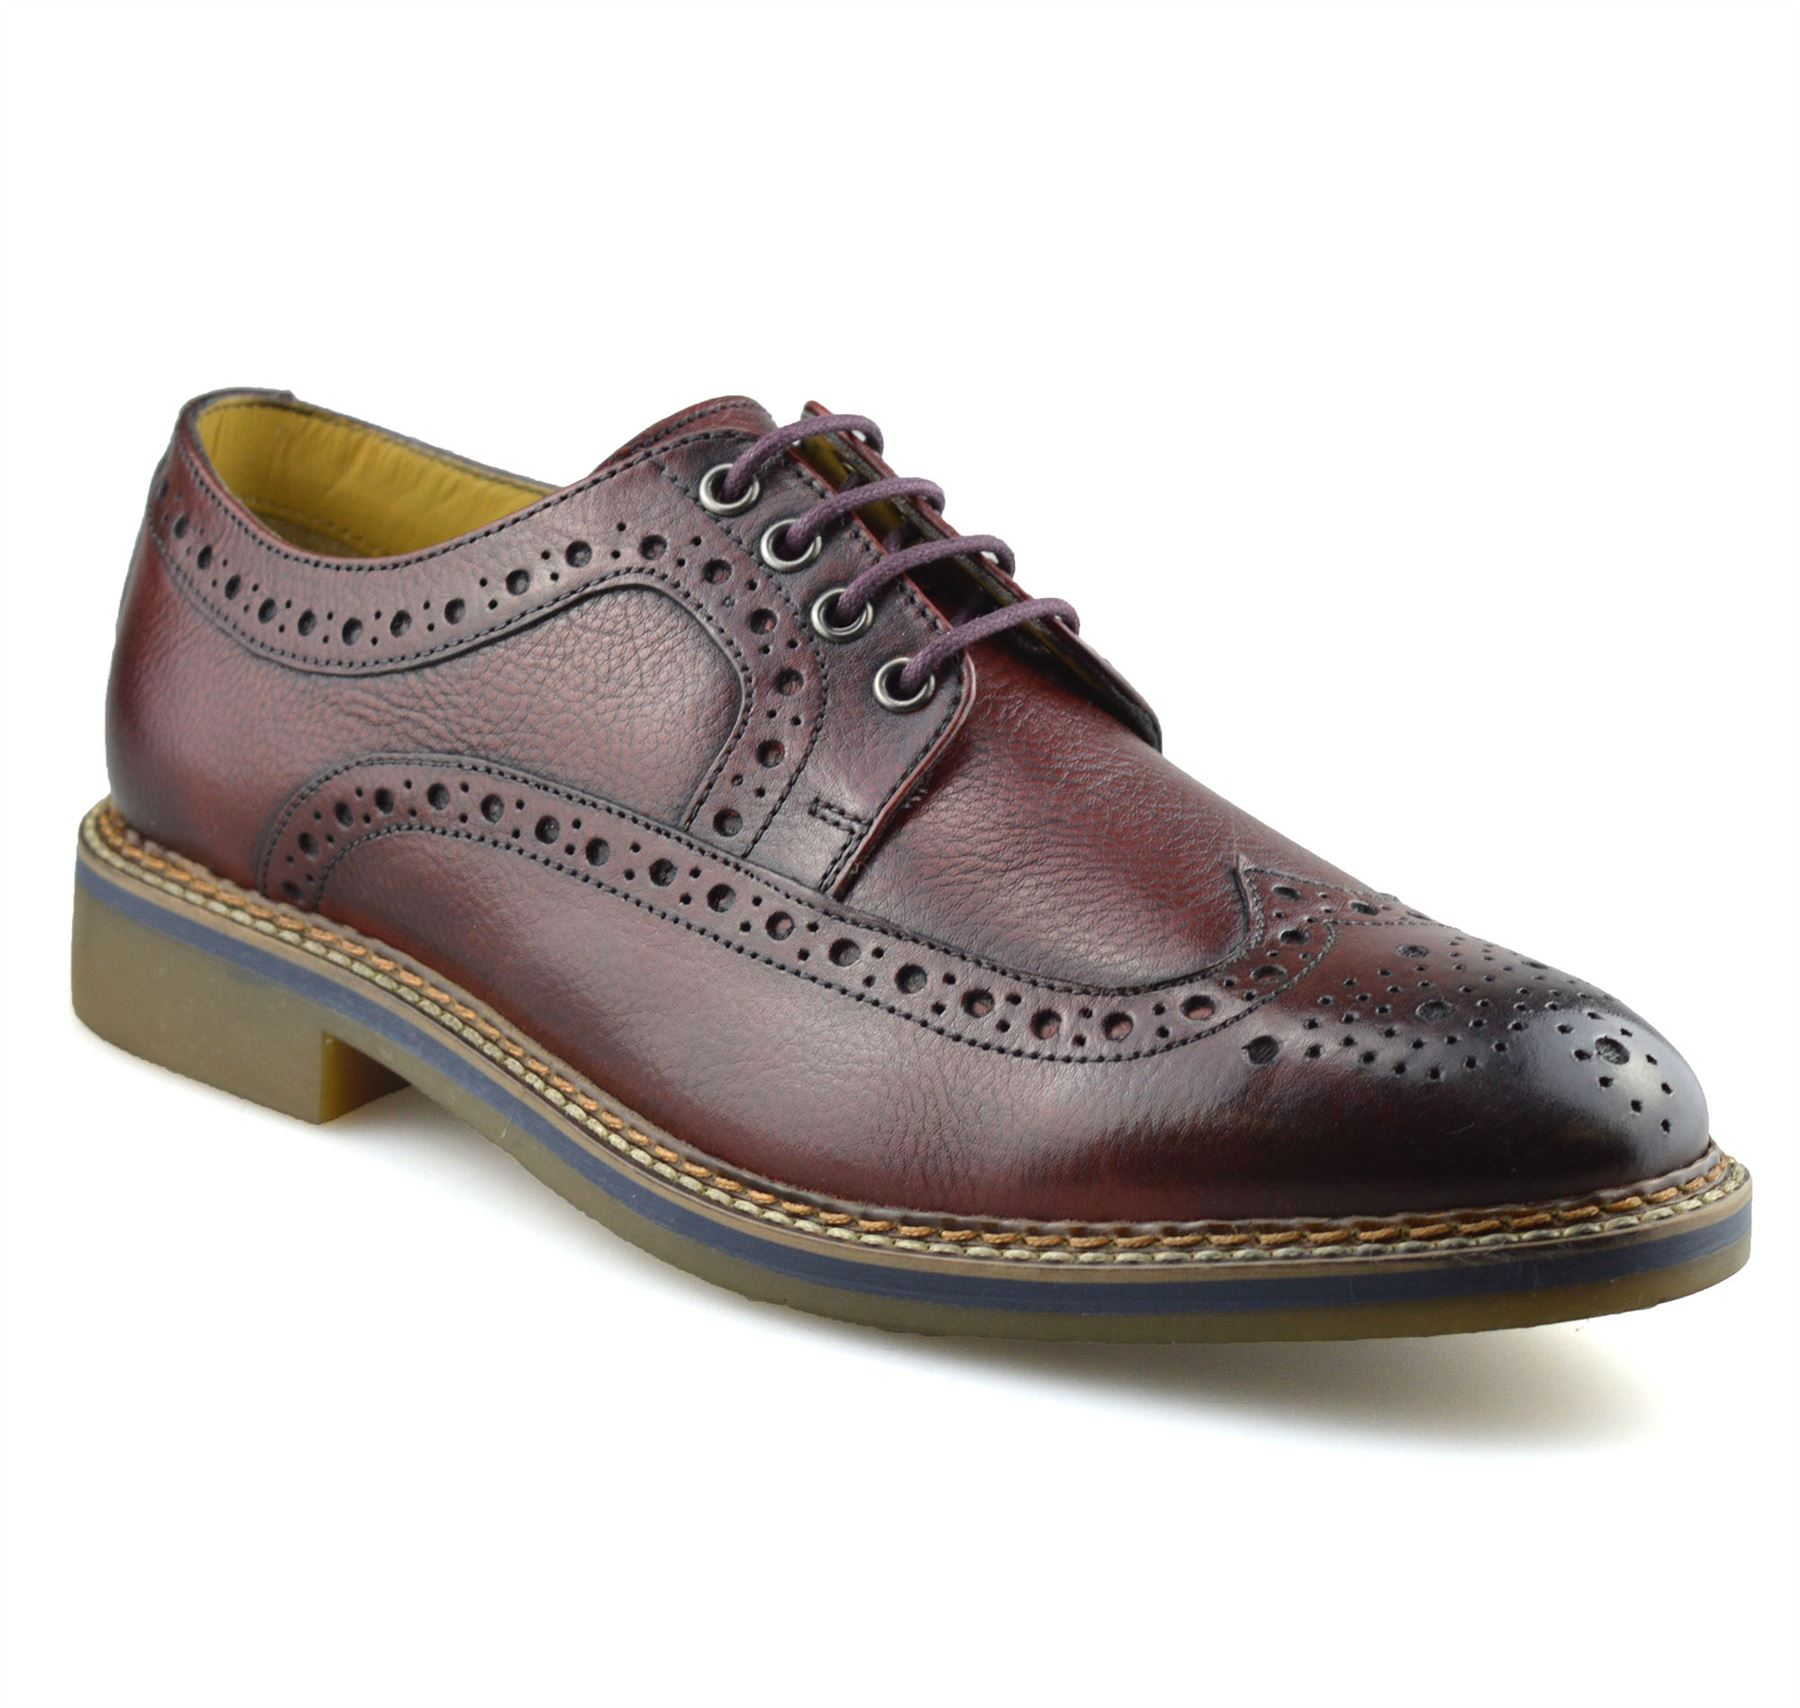 Mens-New-Ikon-Leather-Casual-Smart-Lace-Up-Oxford-Brogues-Work-Office-Shoes-Size thumbnail 25